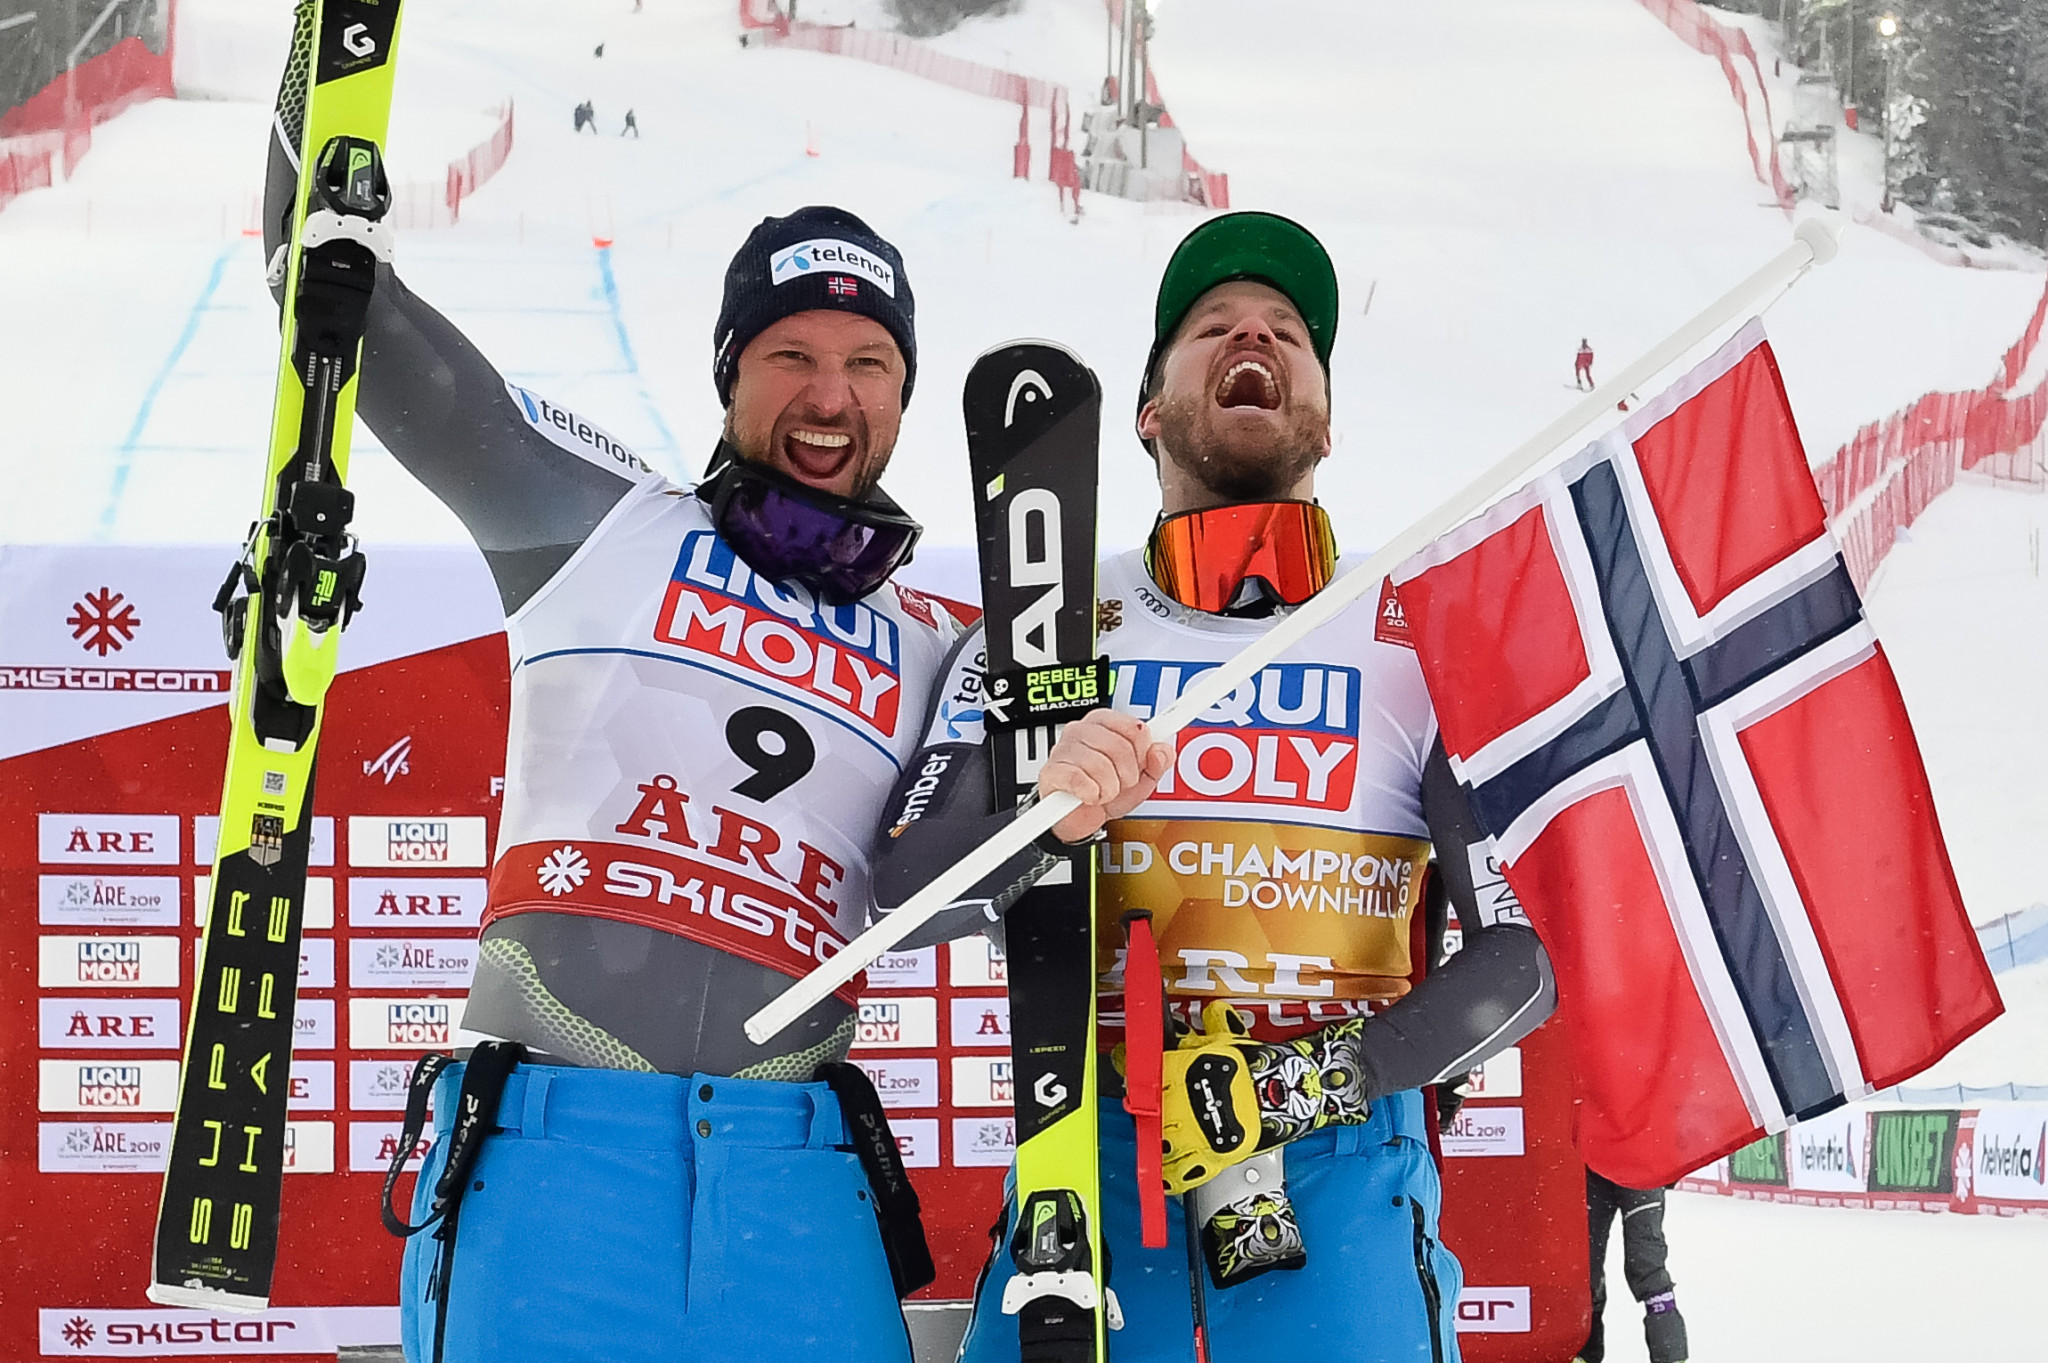 Jansrud secures downhill title as Svindal has silver swansong at FIS Alpine Skiing World Championships